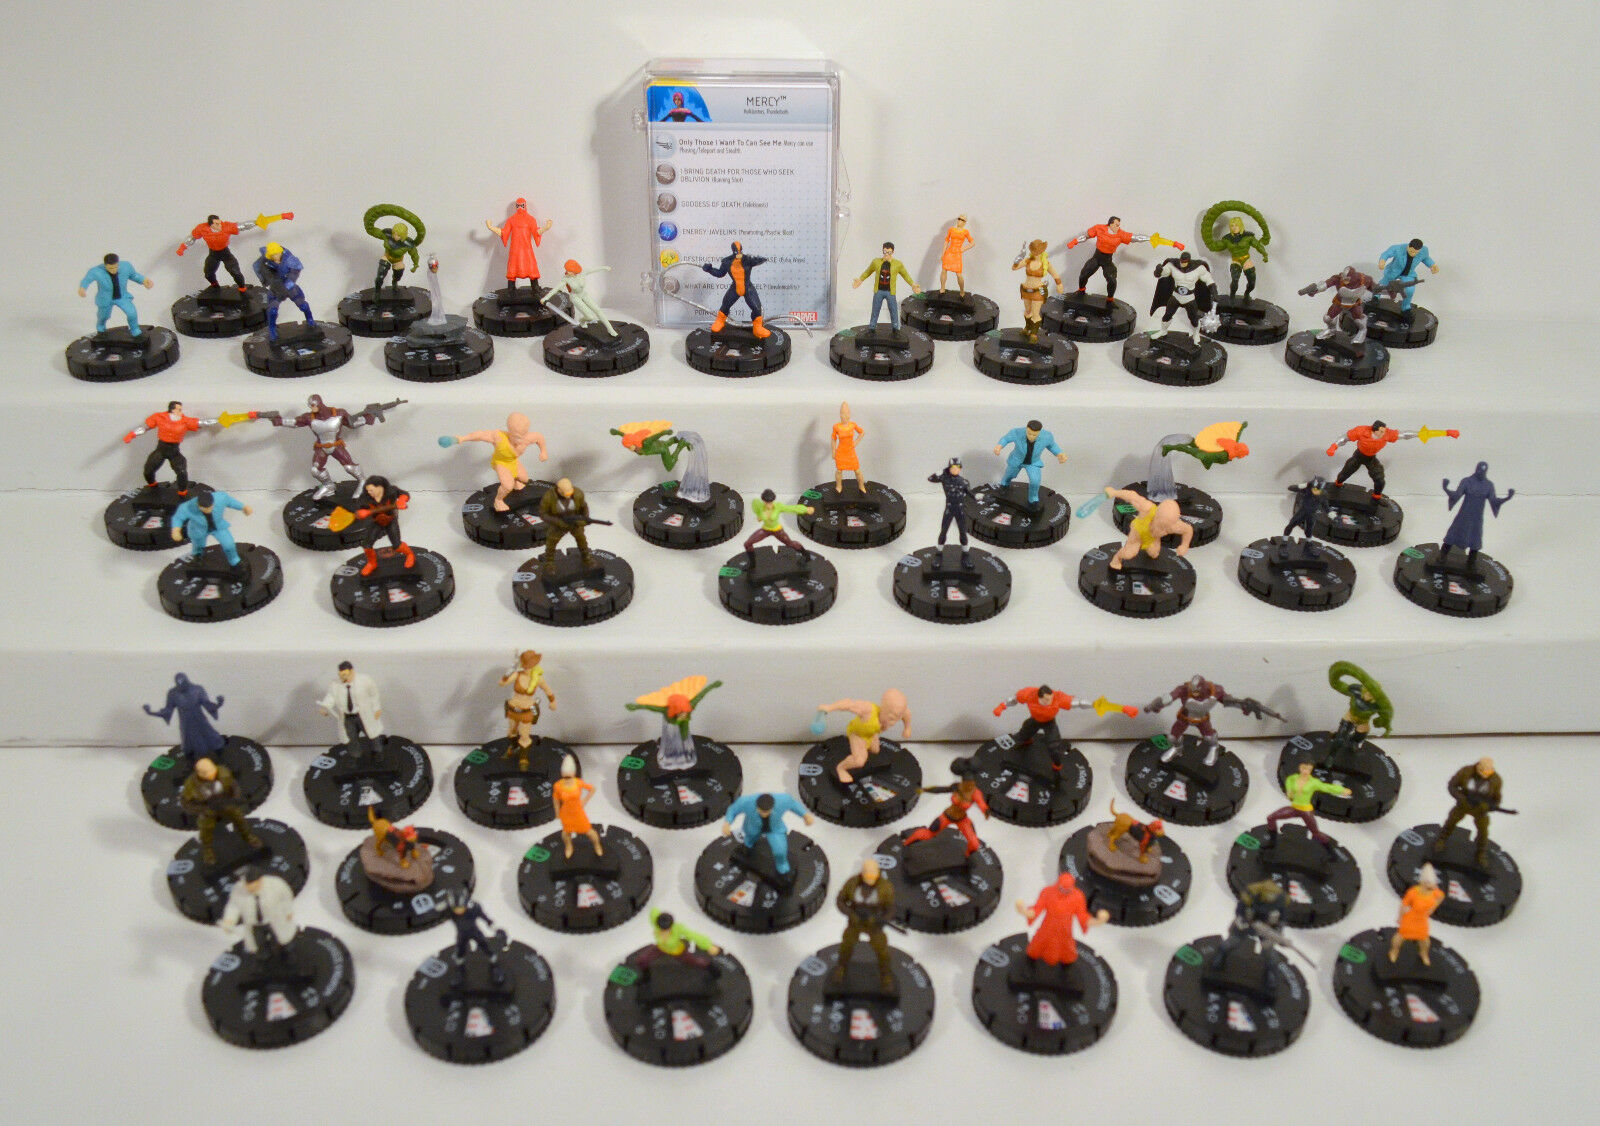 55 Marvel Deadpool 2014 Series Heroclix Game Piece Figures Lot Vamp Siryn Outlaw